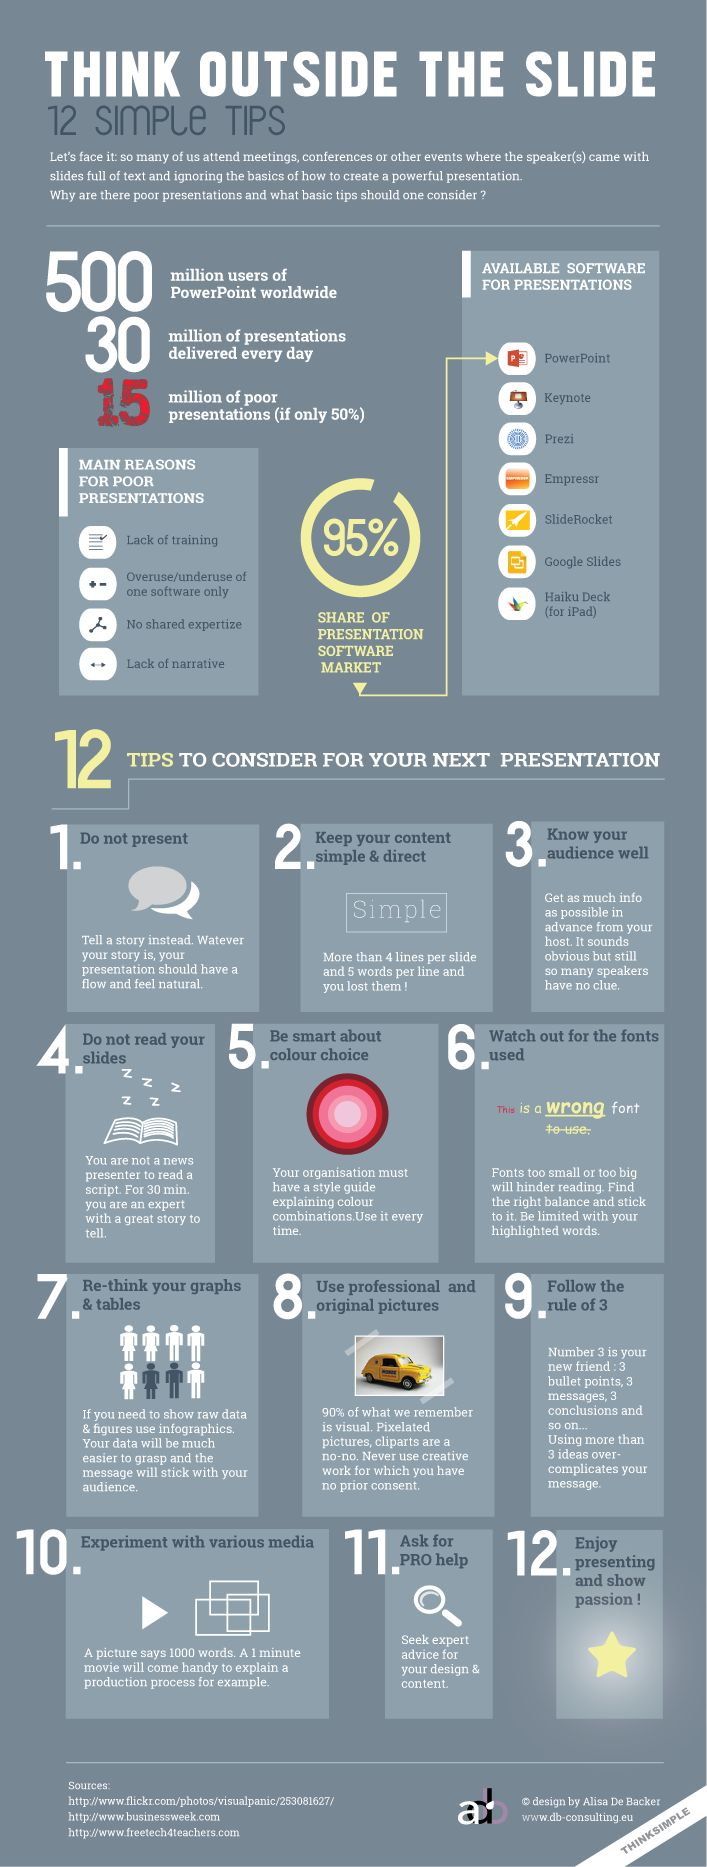 Great tips on using different resources and appropriate content to give presentations